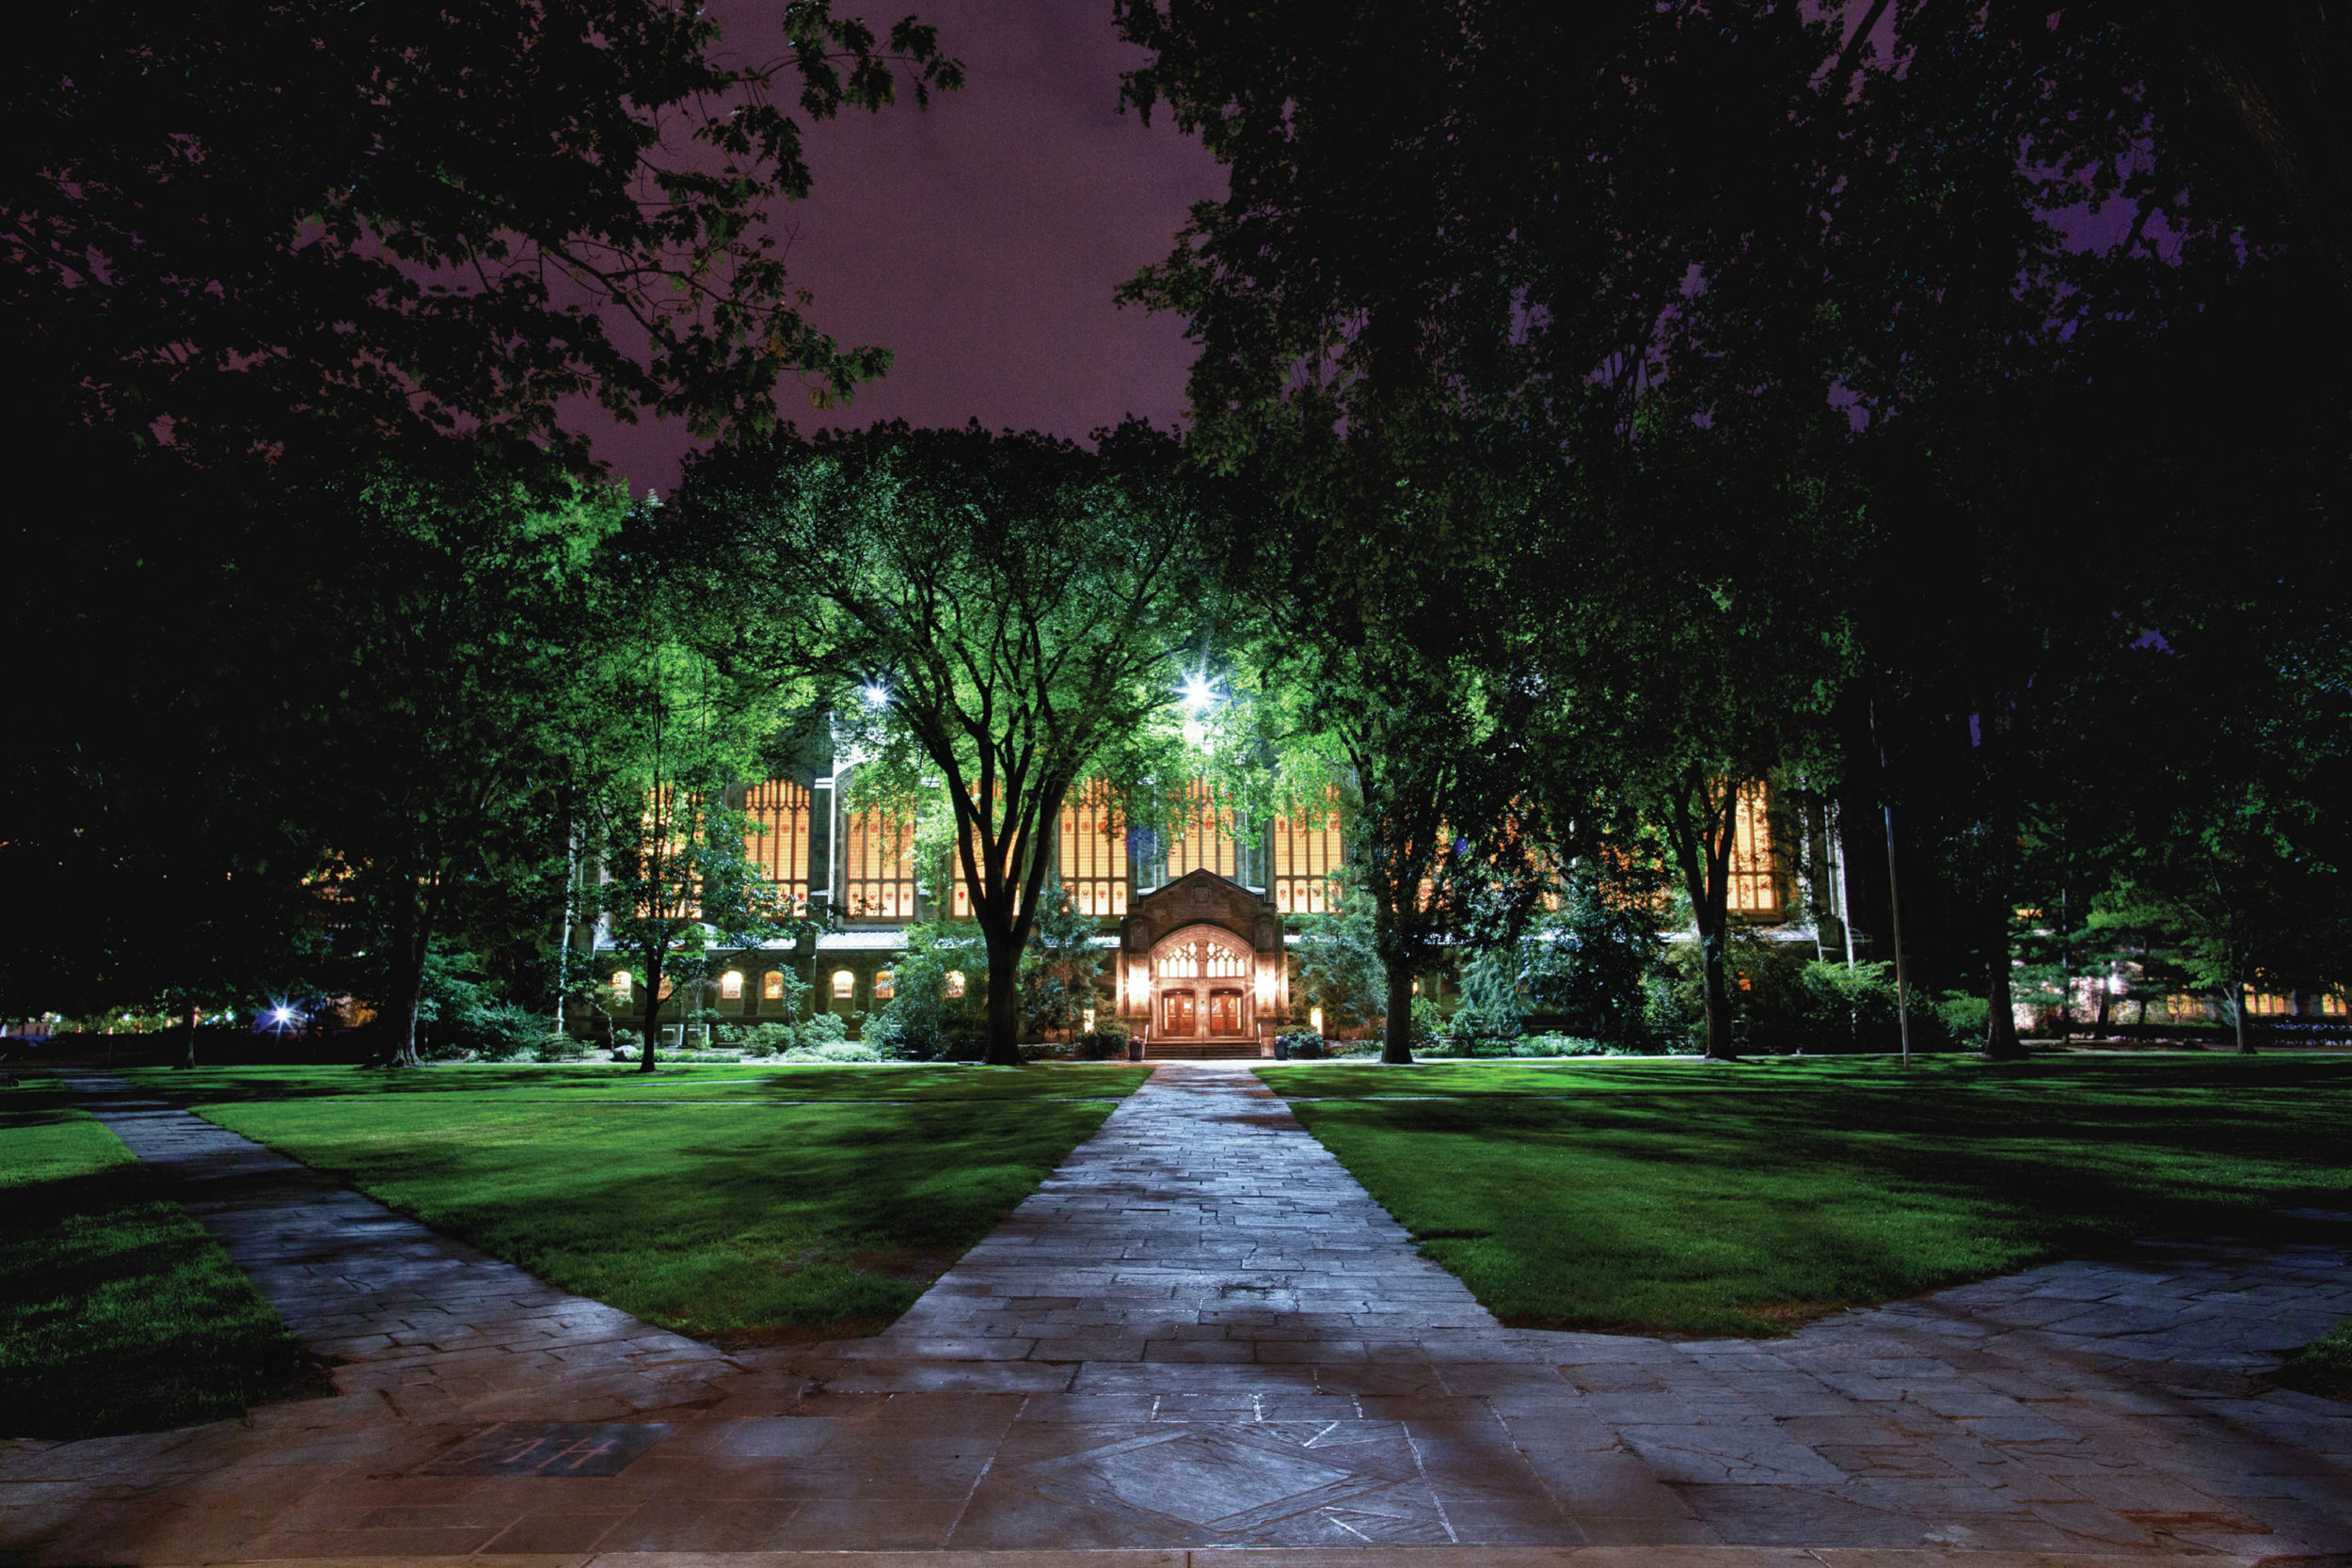 Law Library at night